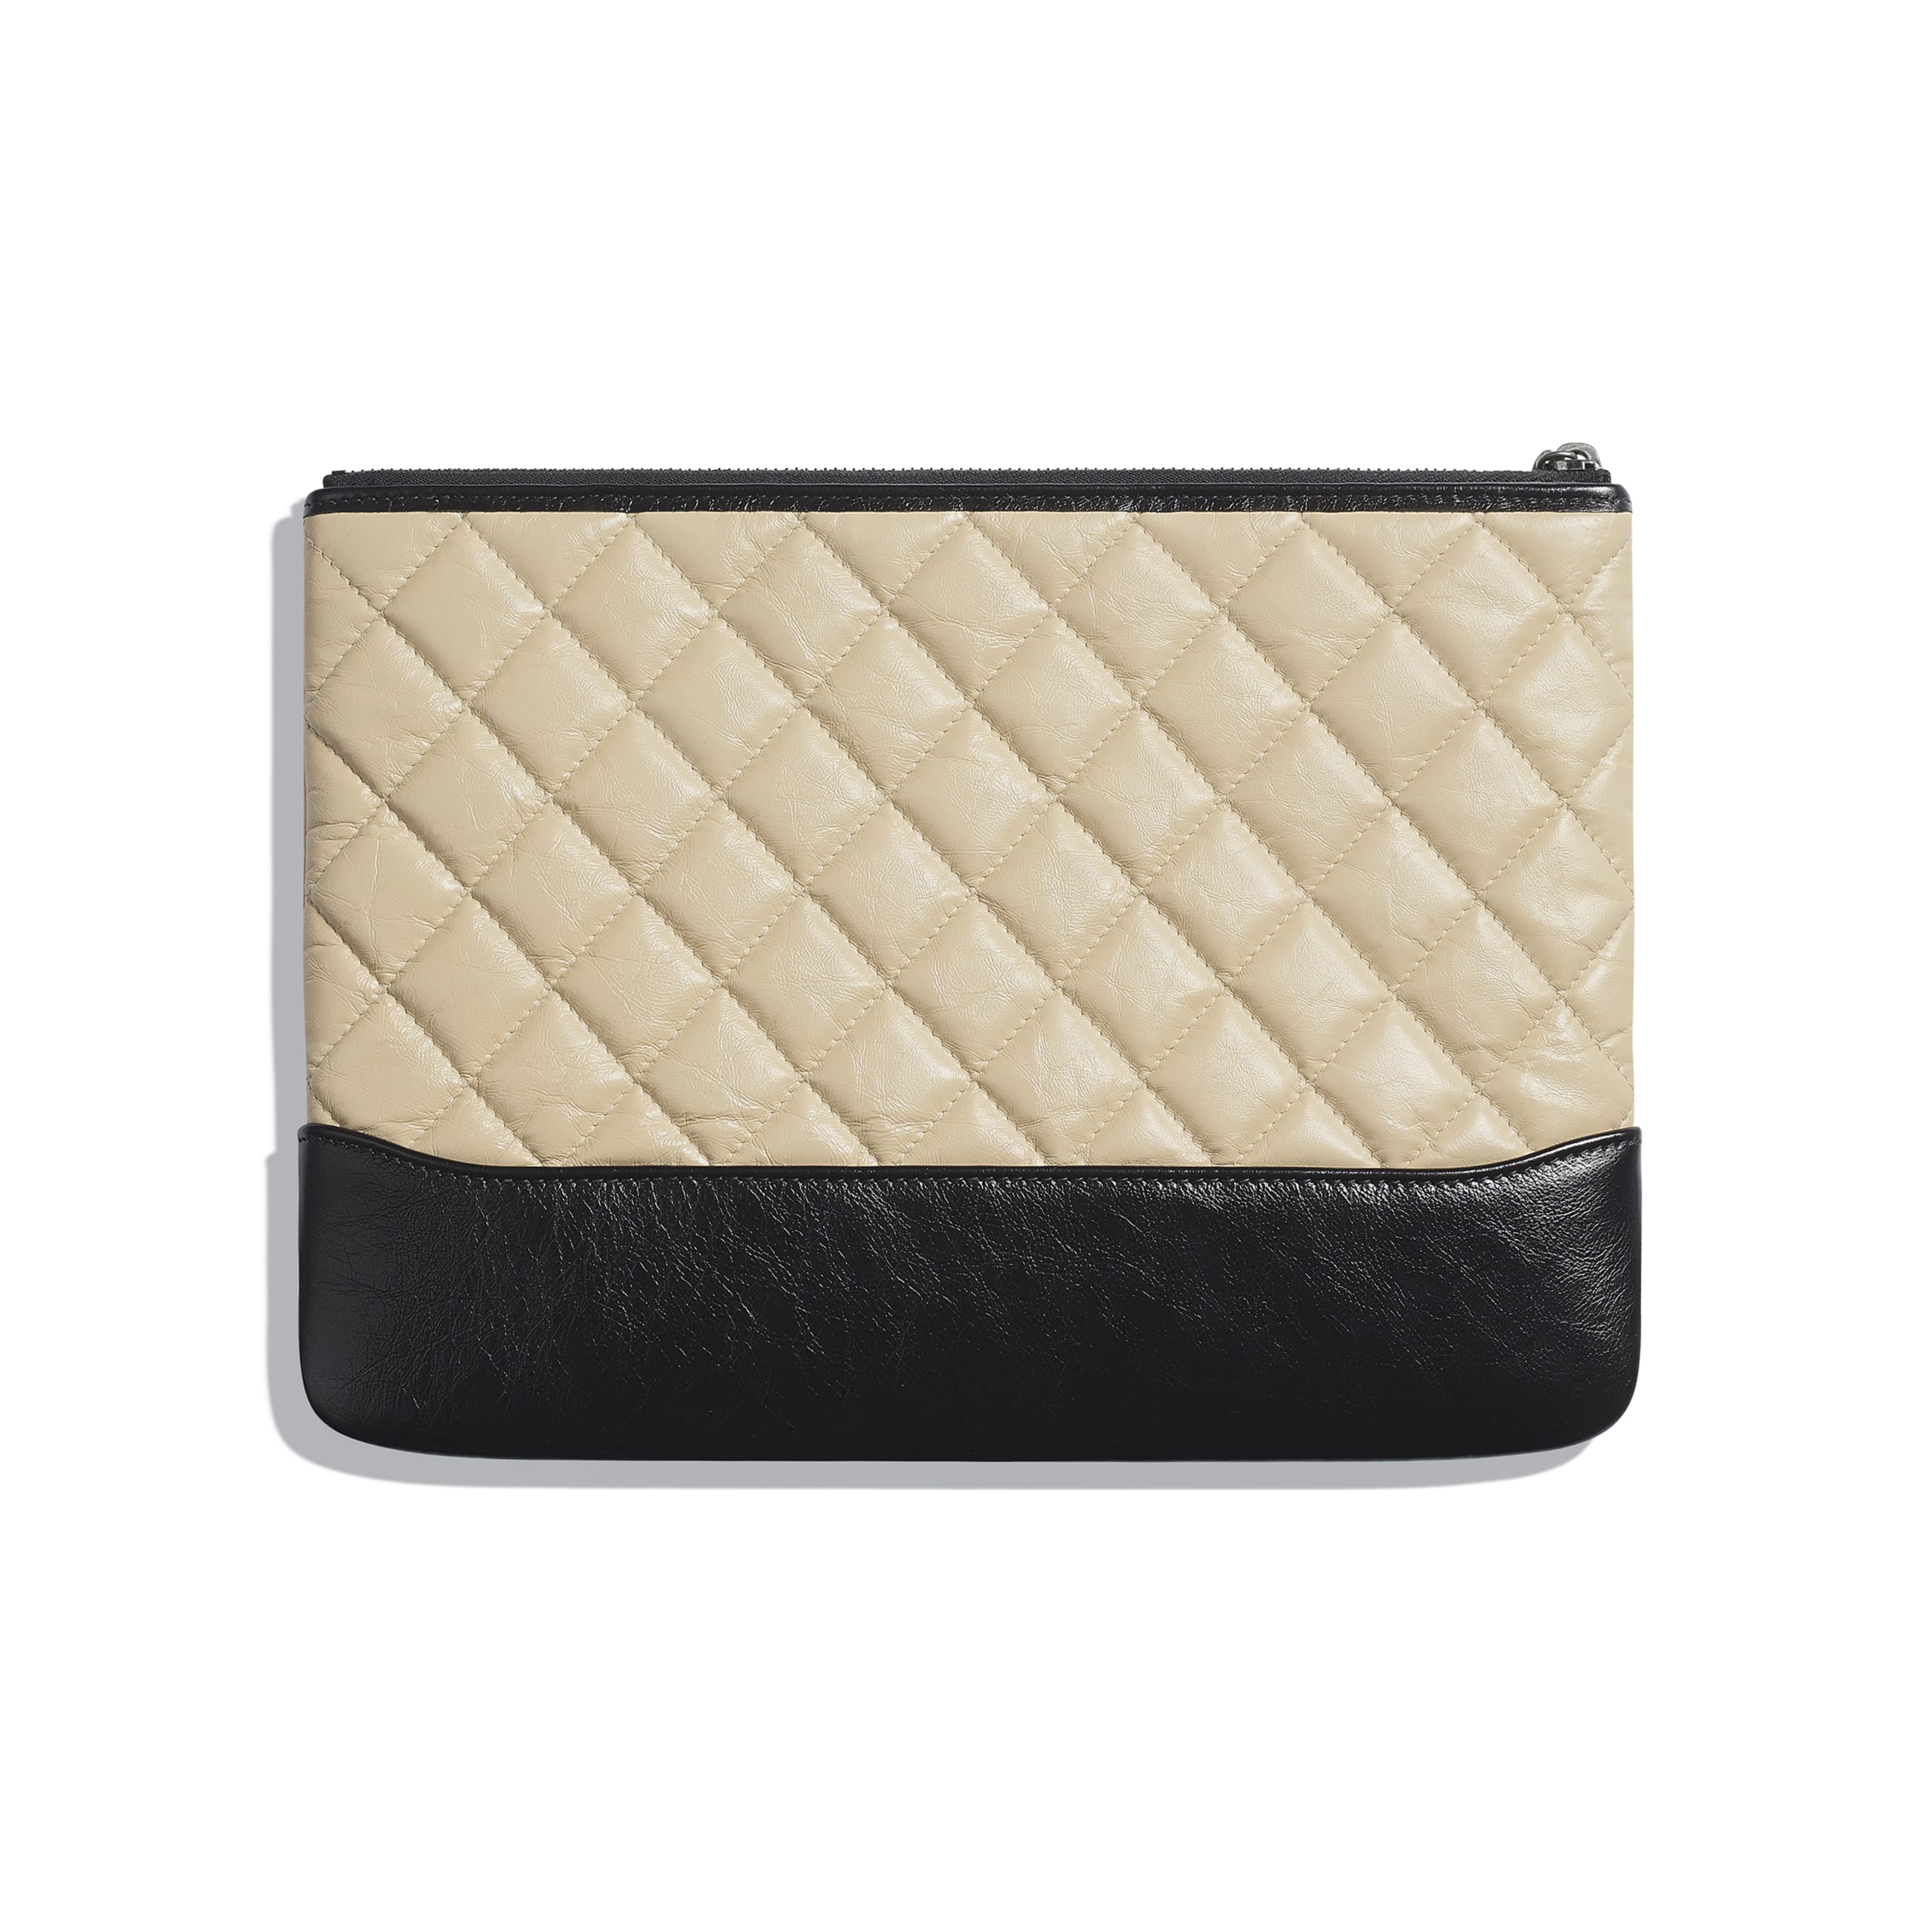 Pouch - Beige & Black - Aged Calfskin, Smooth Calfskin, Silver-Tone & Gold-Tone Metal - Alternative view - see standard sized version